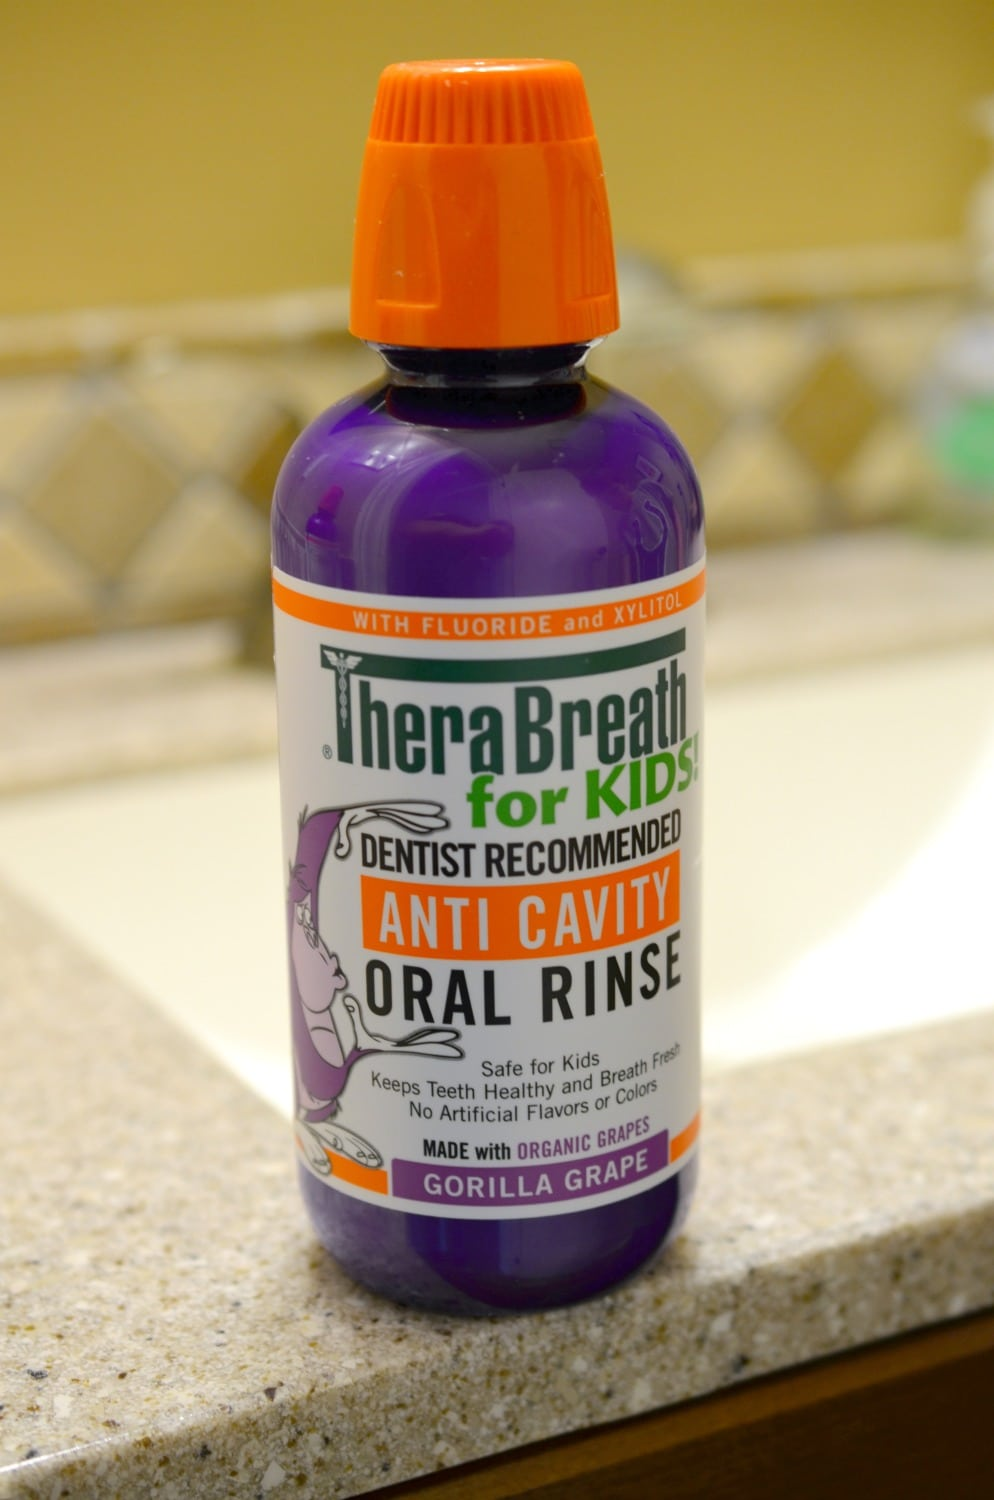 TheraBreath for Kids